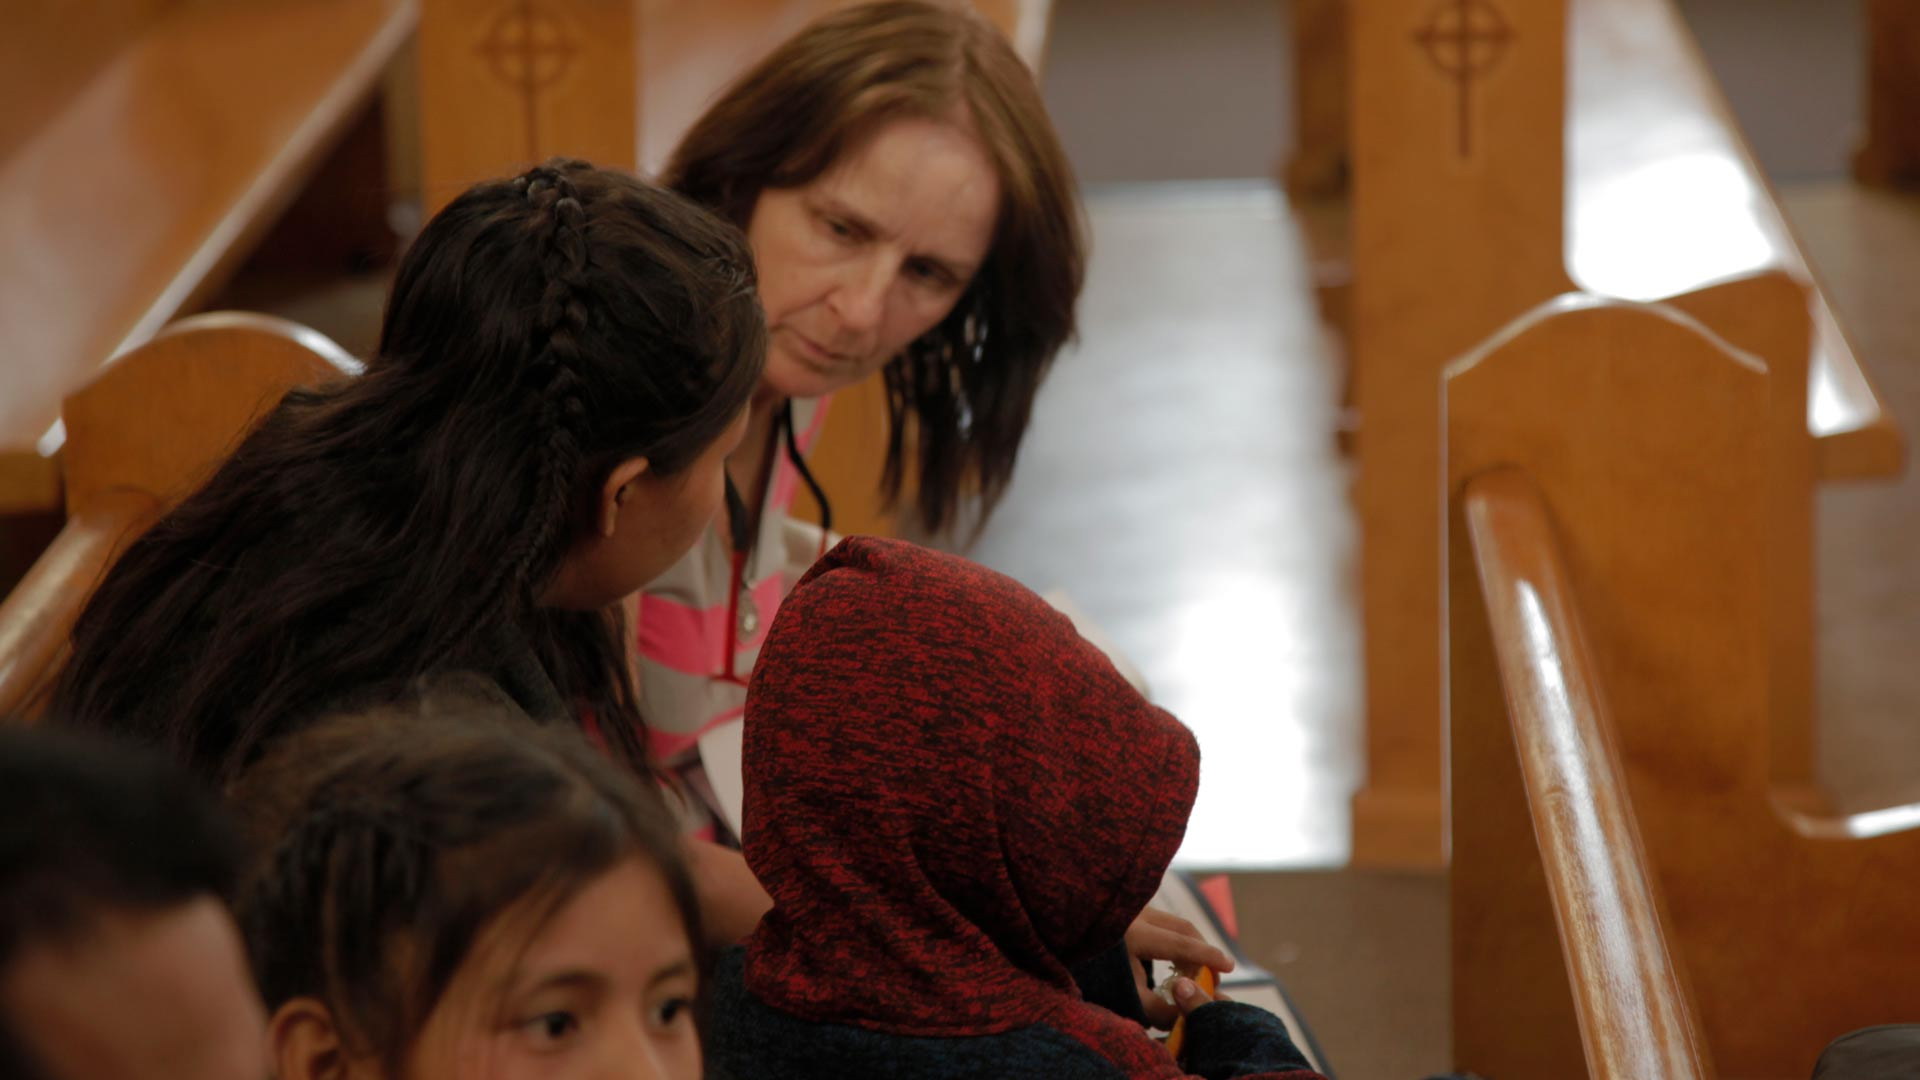 A volunteer at Tucson's Benedictine Monastery reviews when and where an asylum seeking family must appear for an immigration hearing, May 2019.